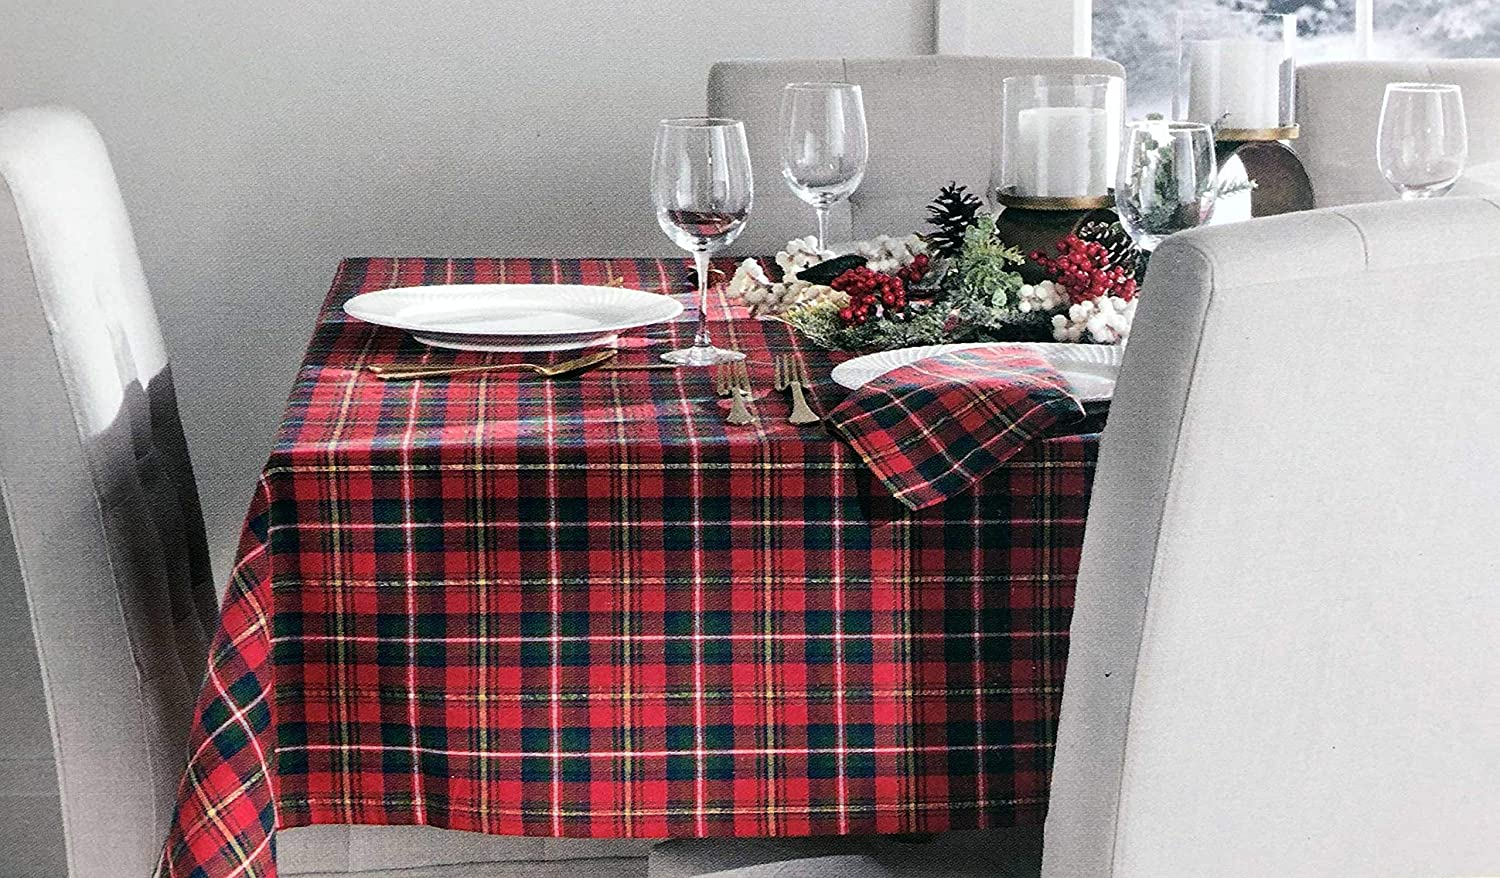 Ridgefield Home Fabric Tablecloth Set with 6 Napkins Classic Christmas Scottish Tartan Plaid Pattern in Red Green with Thinner Gold White Stripes (60 Inches x 84 Inches)